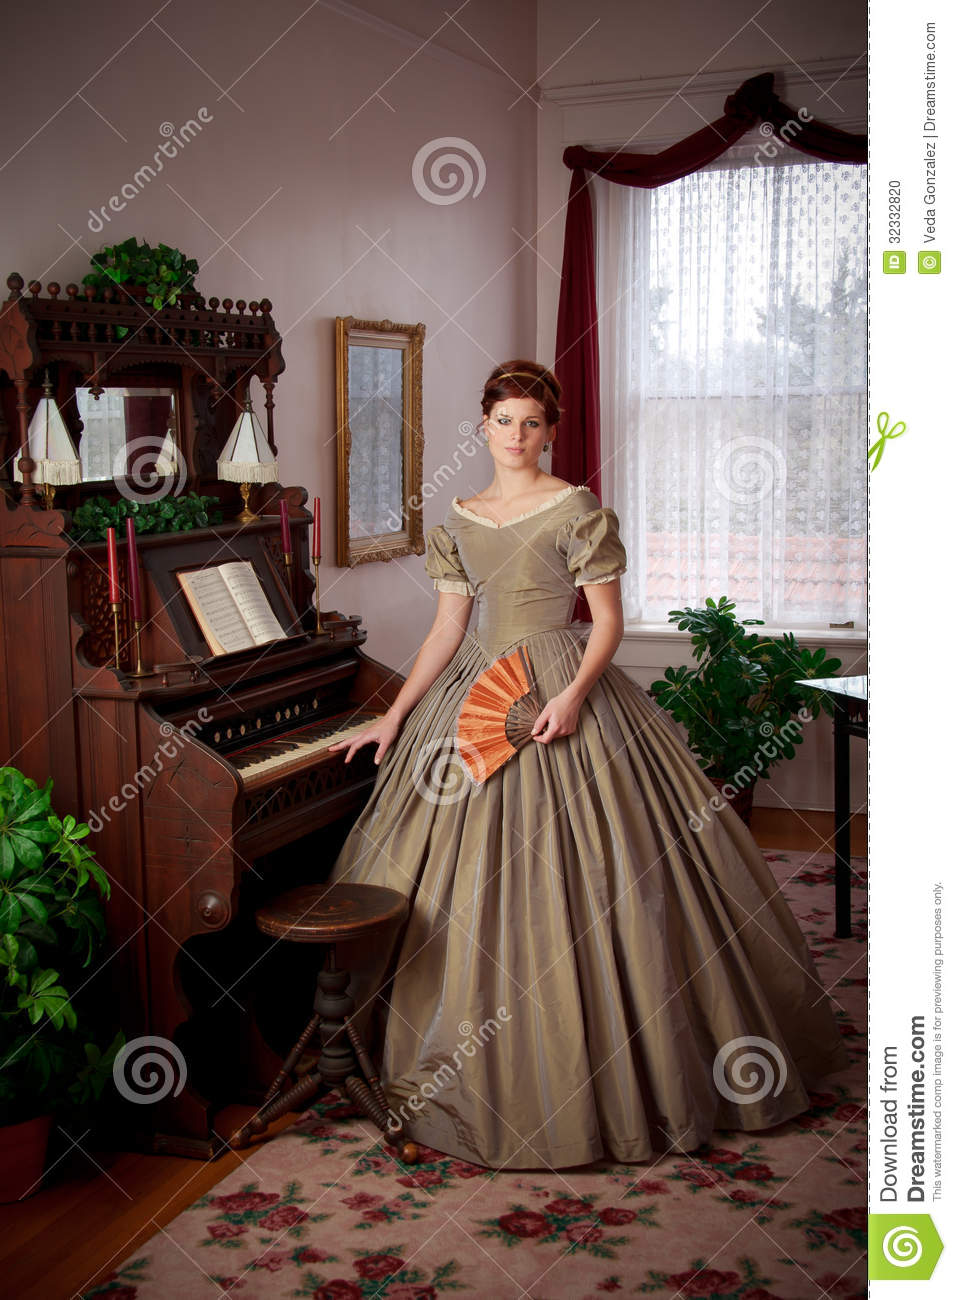 Civil War Historical Woman Standing By Pump Organ Stock Photo  Image of lounging 1860s 32332820